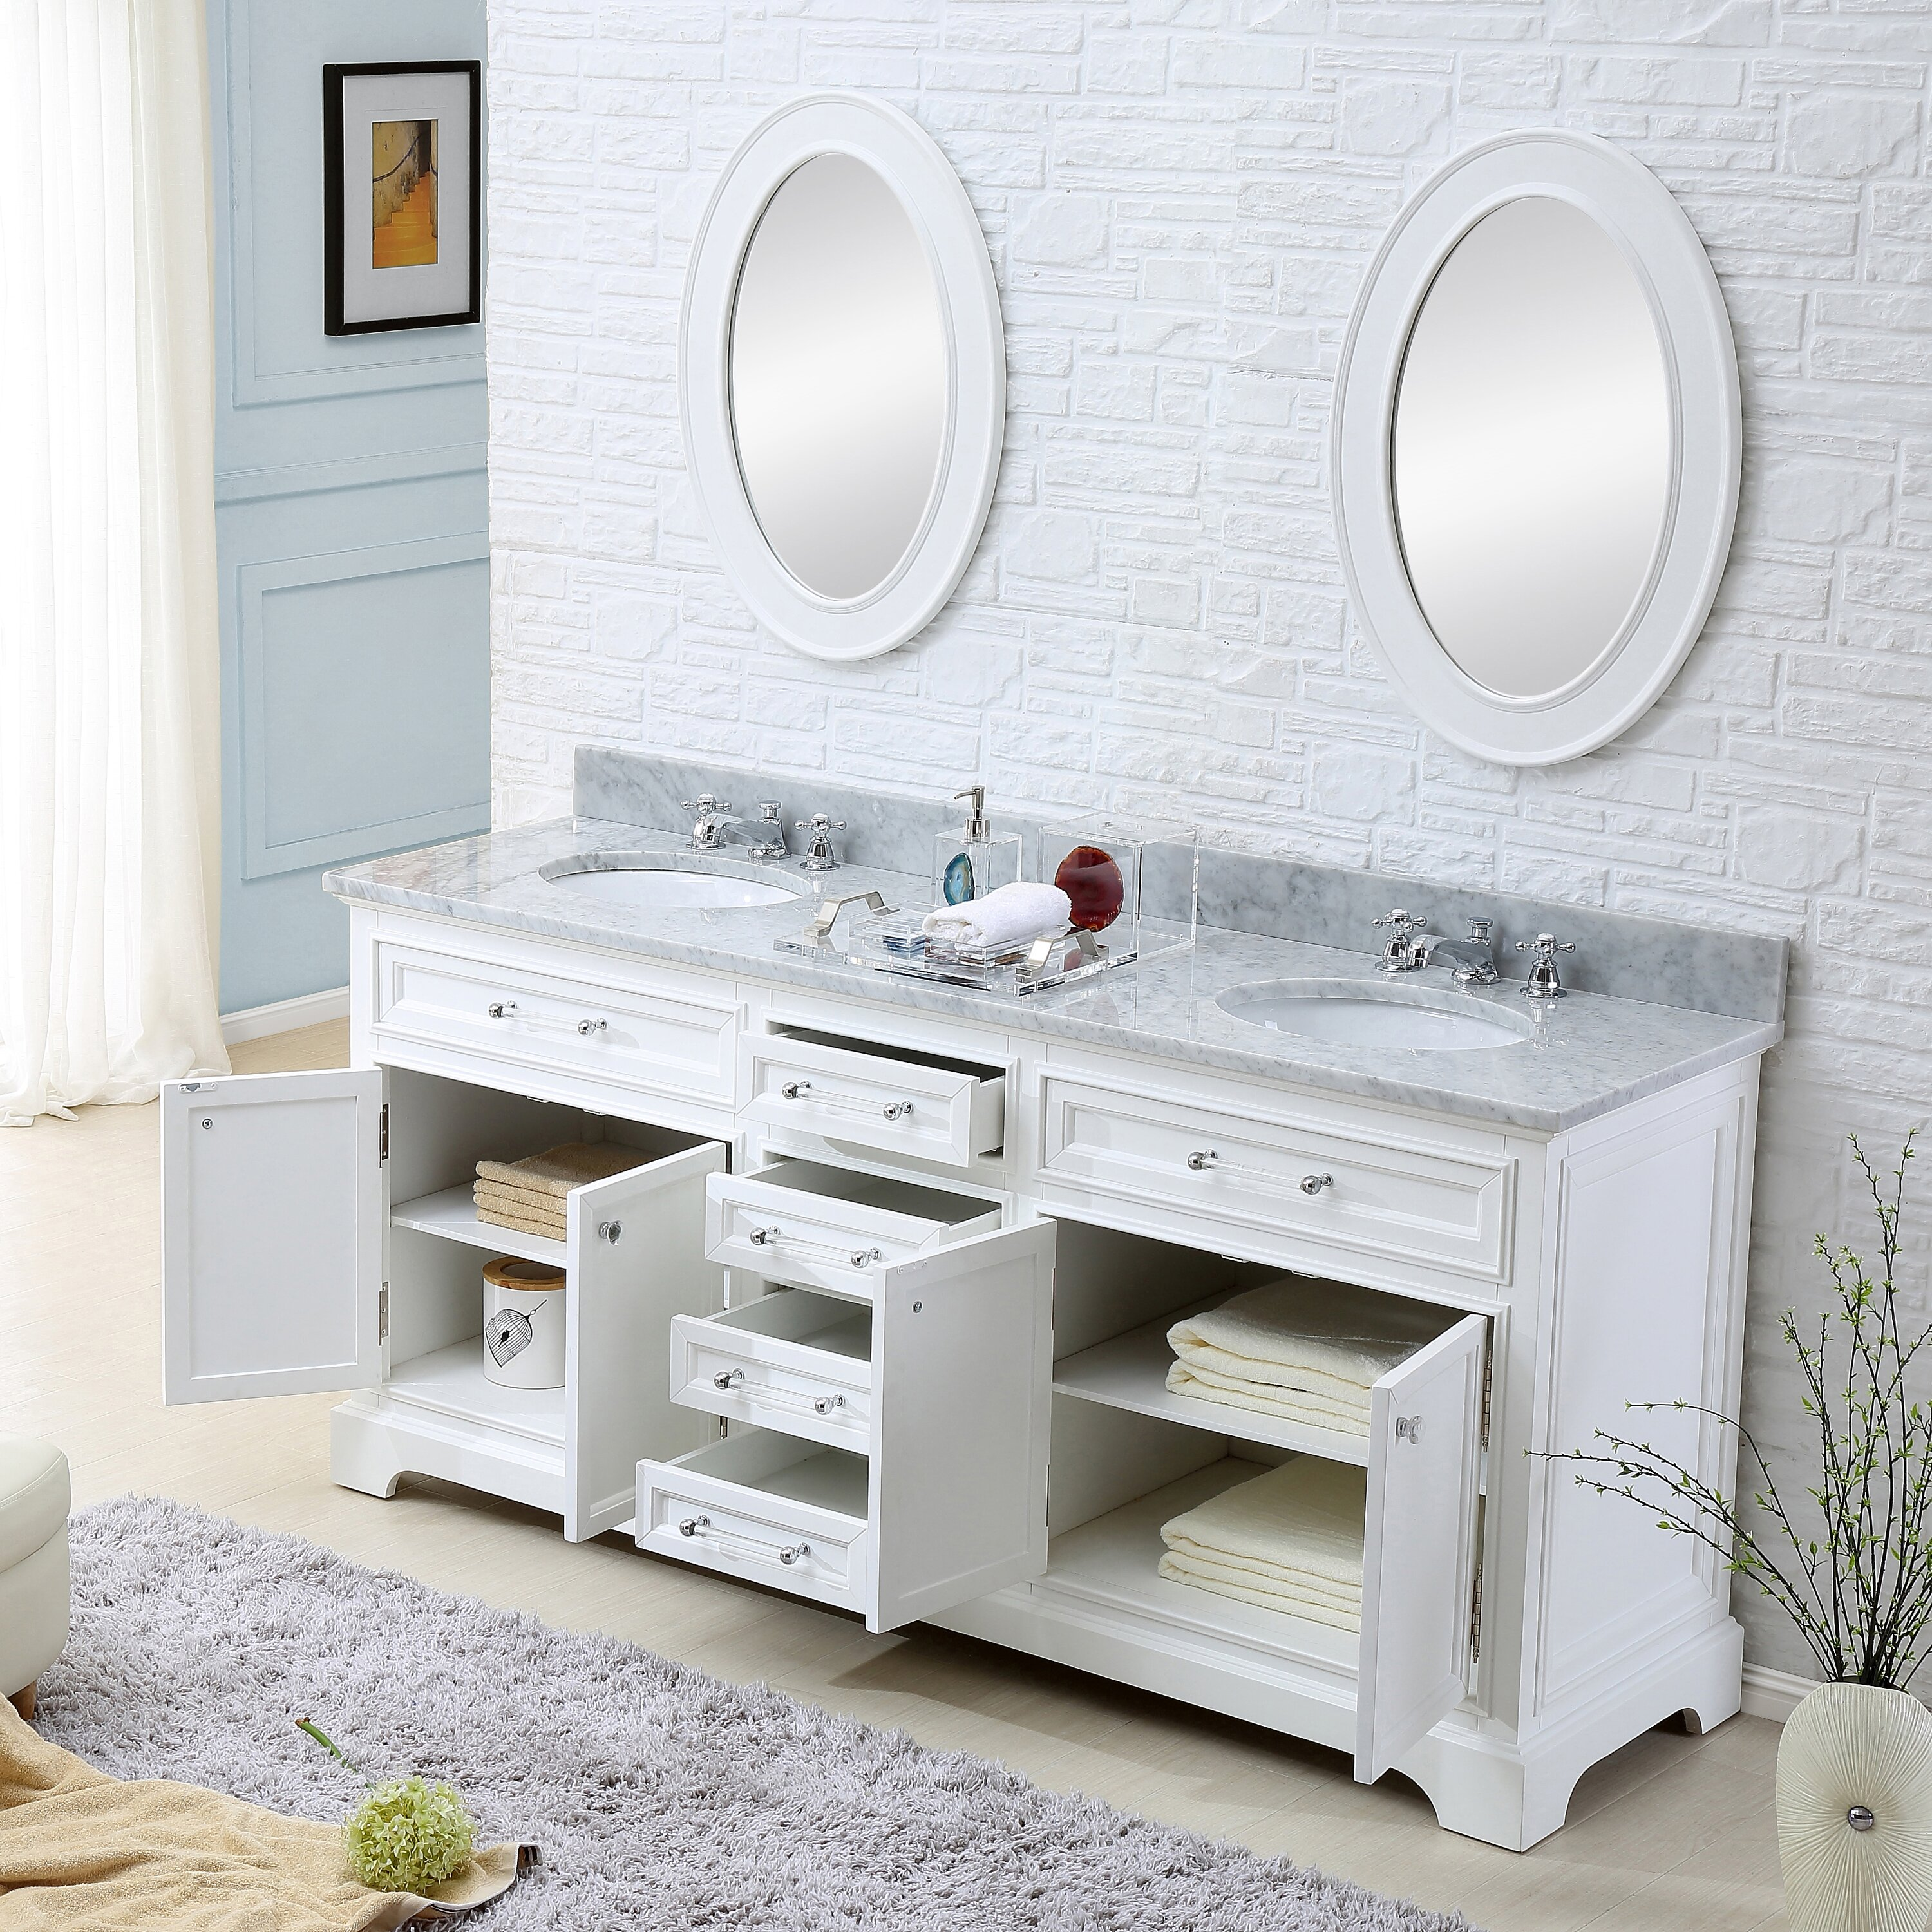 Darby Home Co Colchester 72 Double Sink Bathroom Vanity Set White Reviews Wayfair